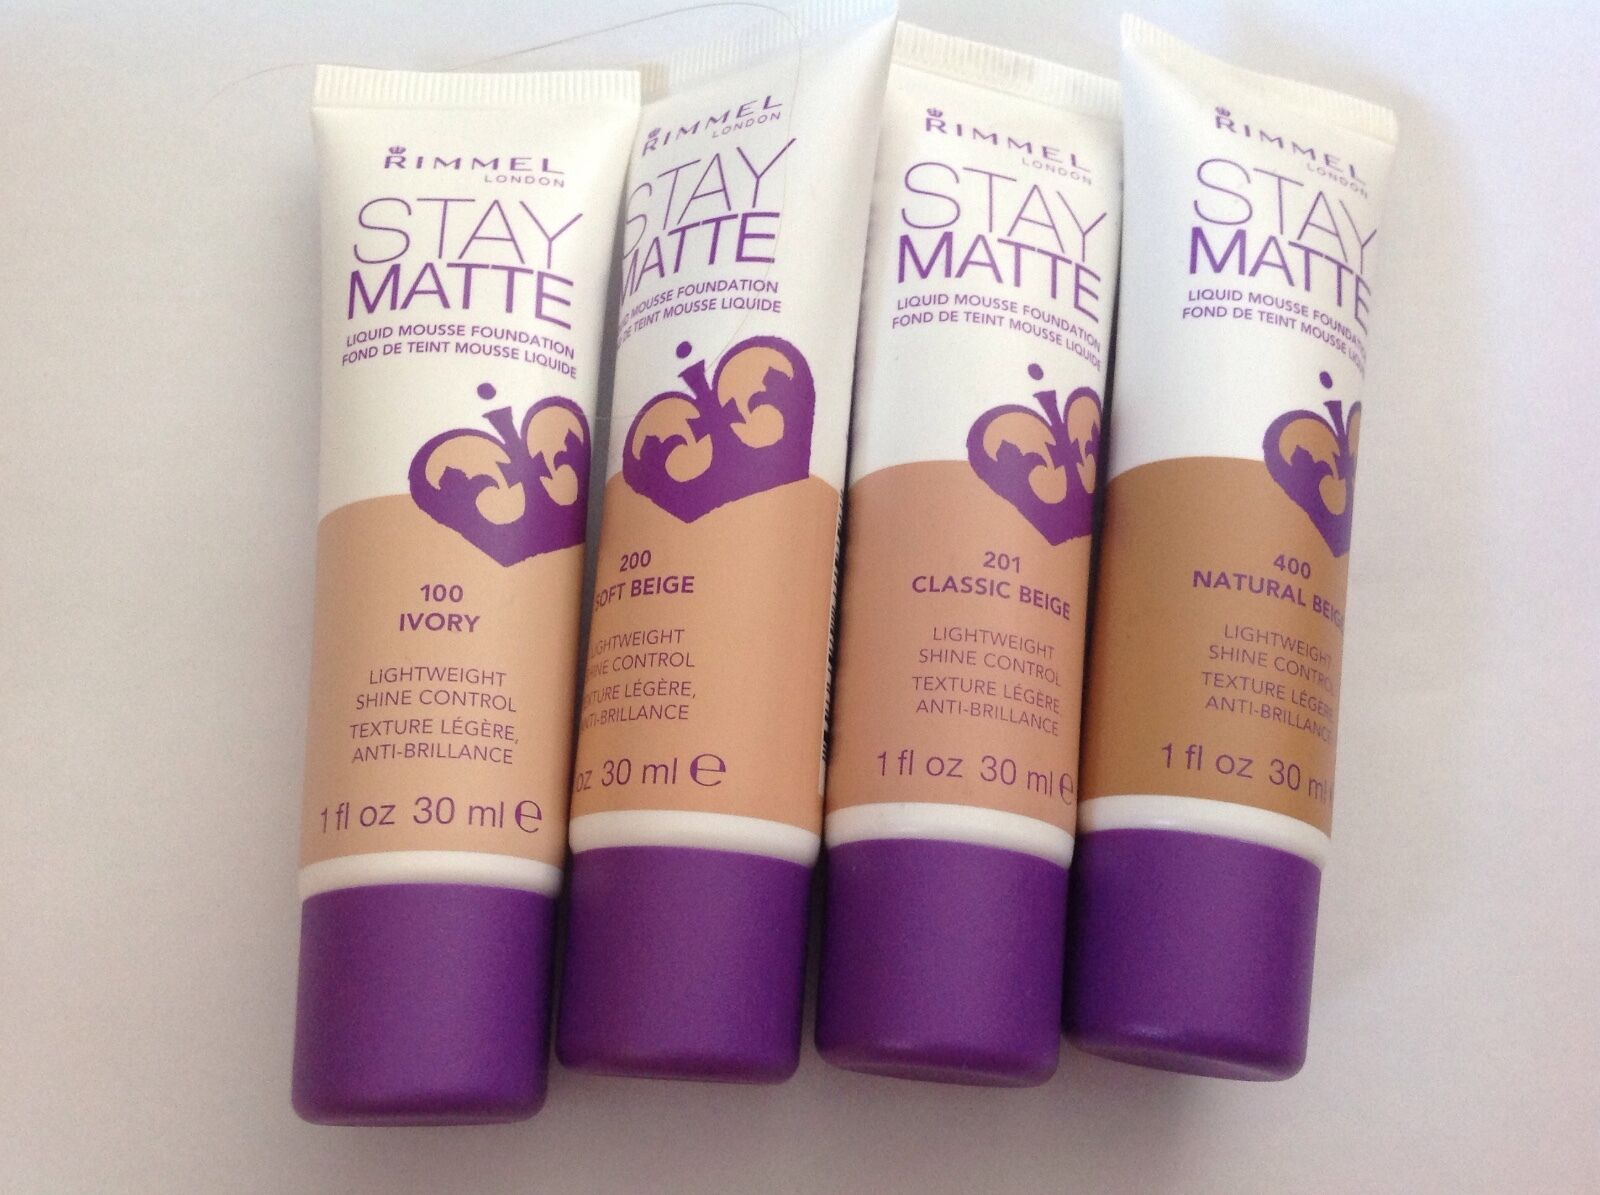 Rimmel Stay Matte Liquid Mousse Foundation Var Shades 449 1 Of 1free Shipping